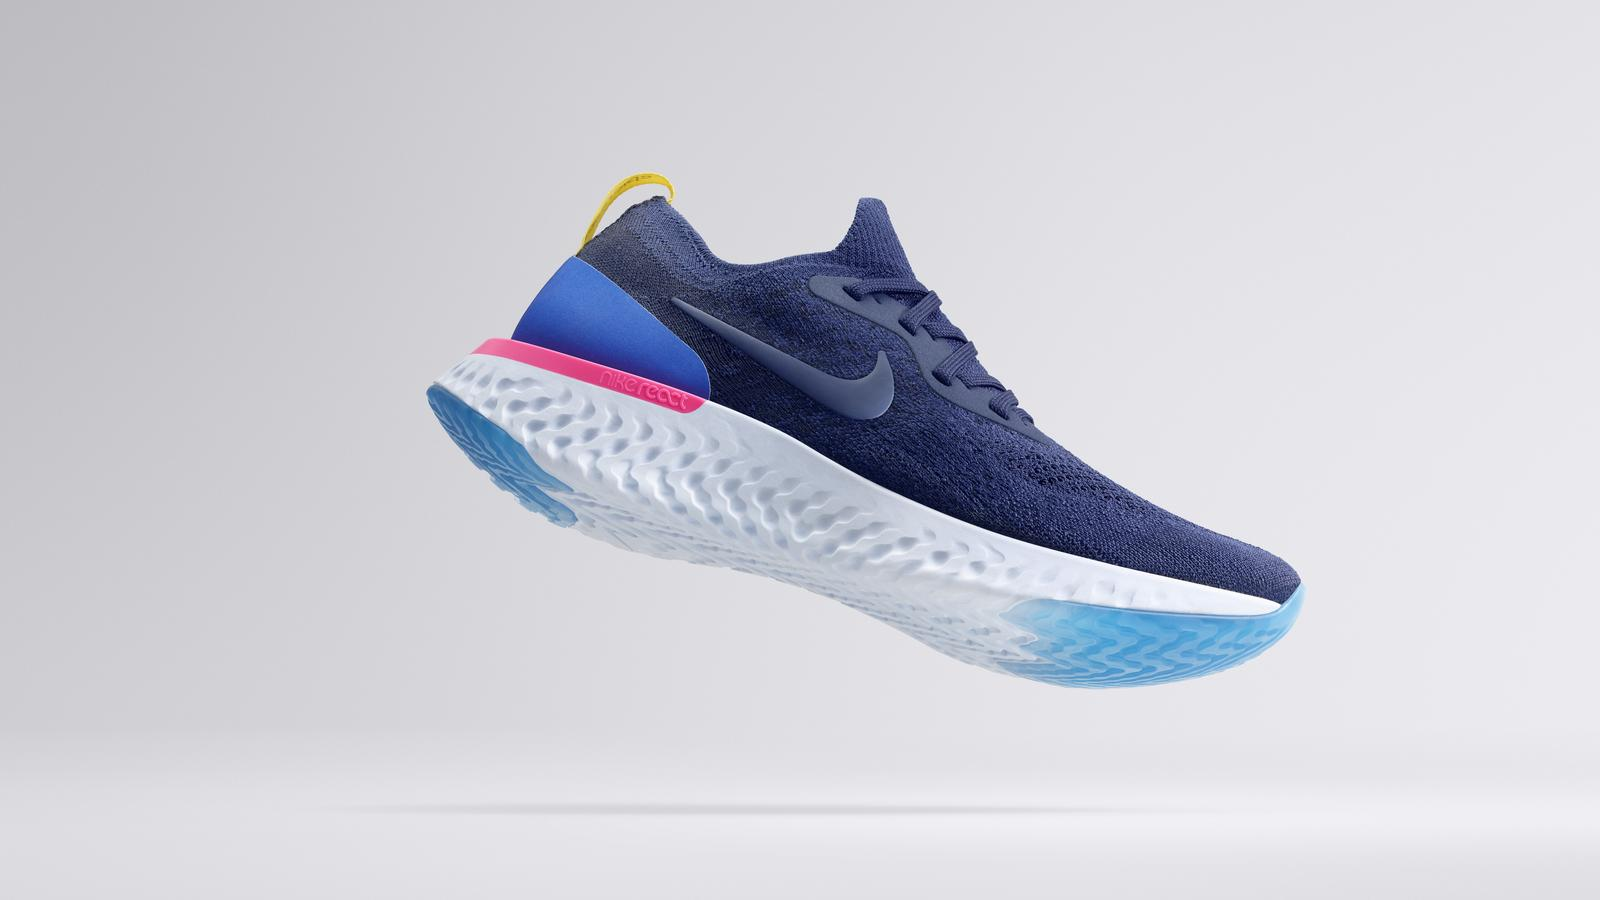 The New Nike Epic React Flyknit Integrates Its Proprietary Nike React Foam